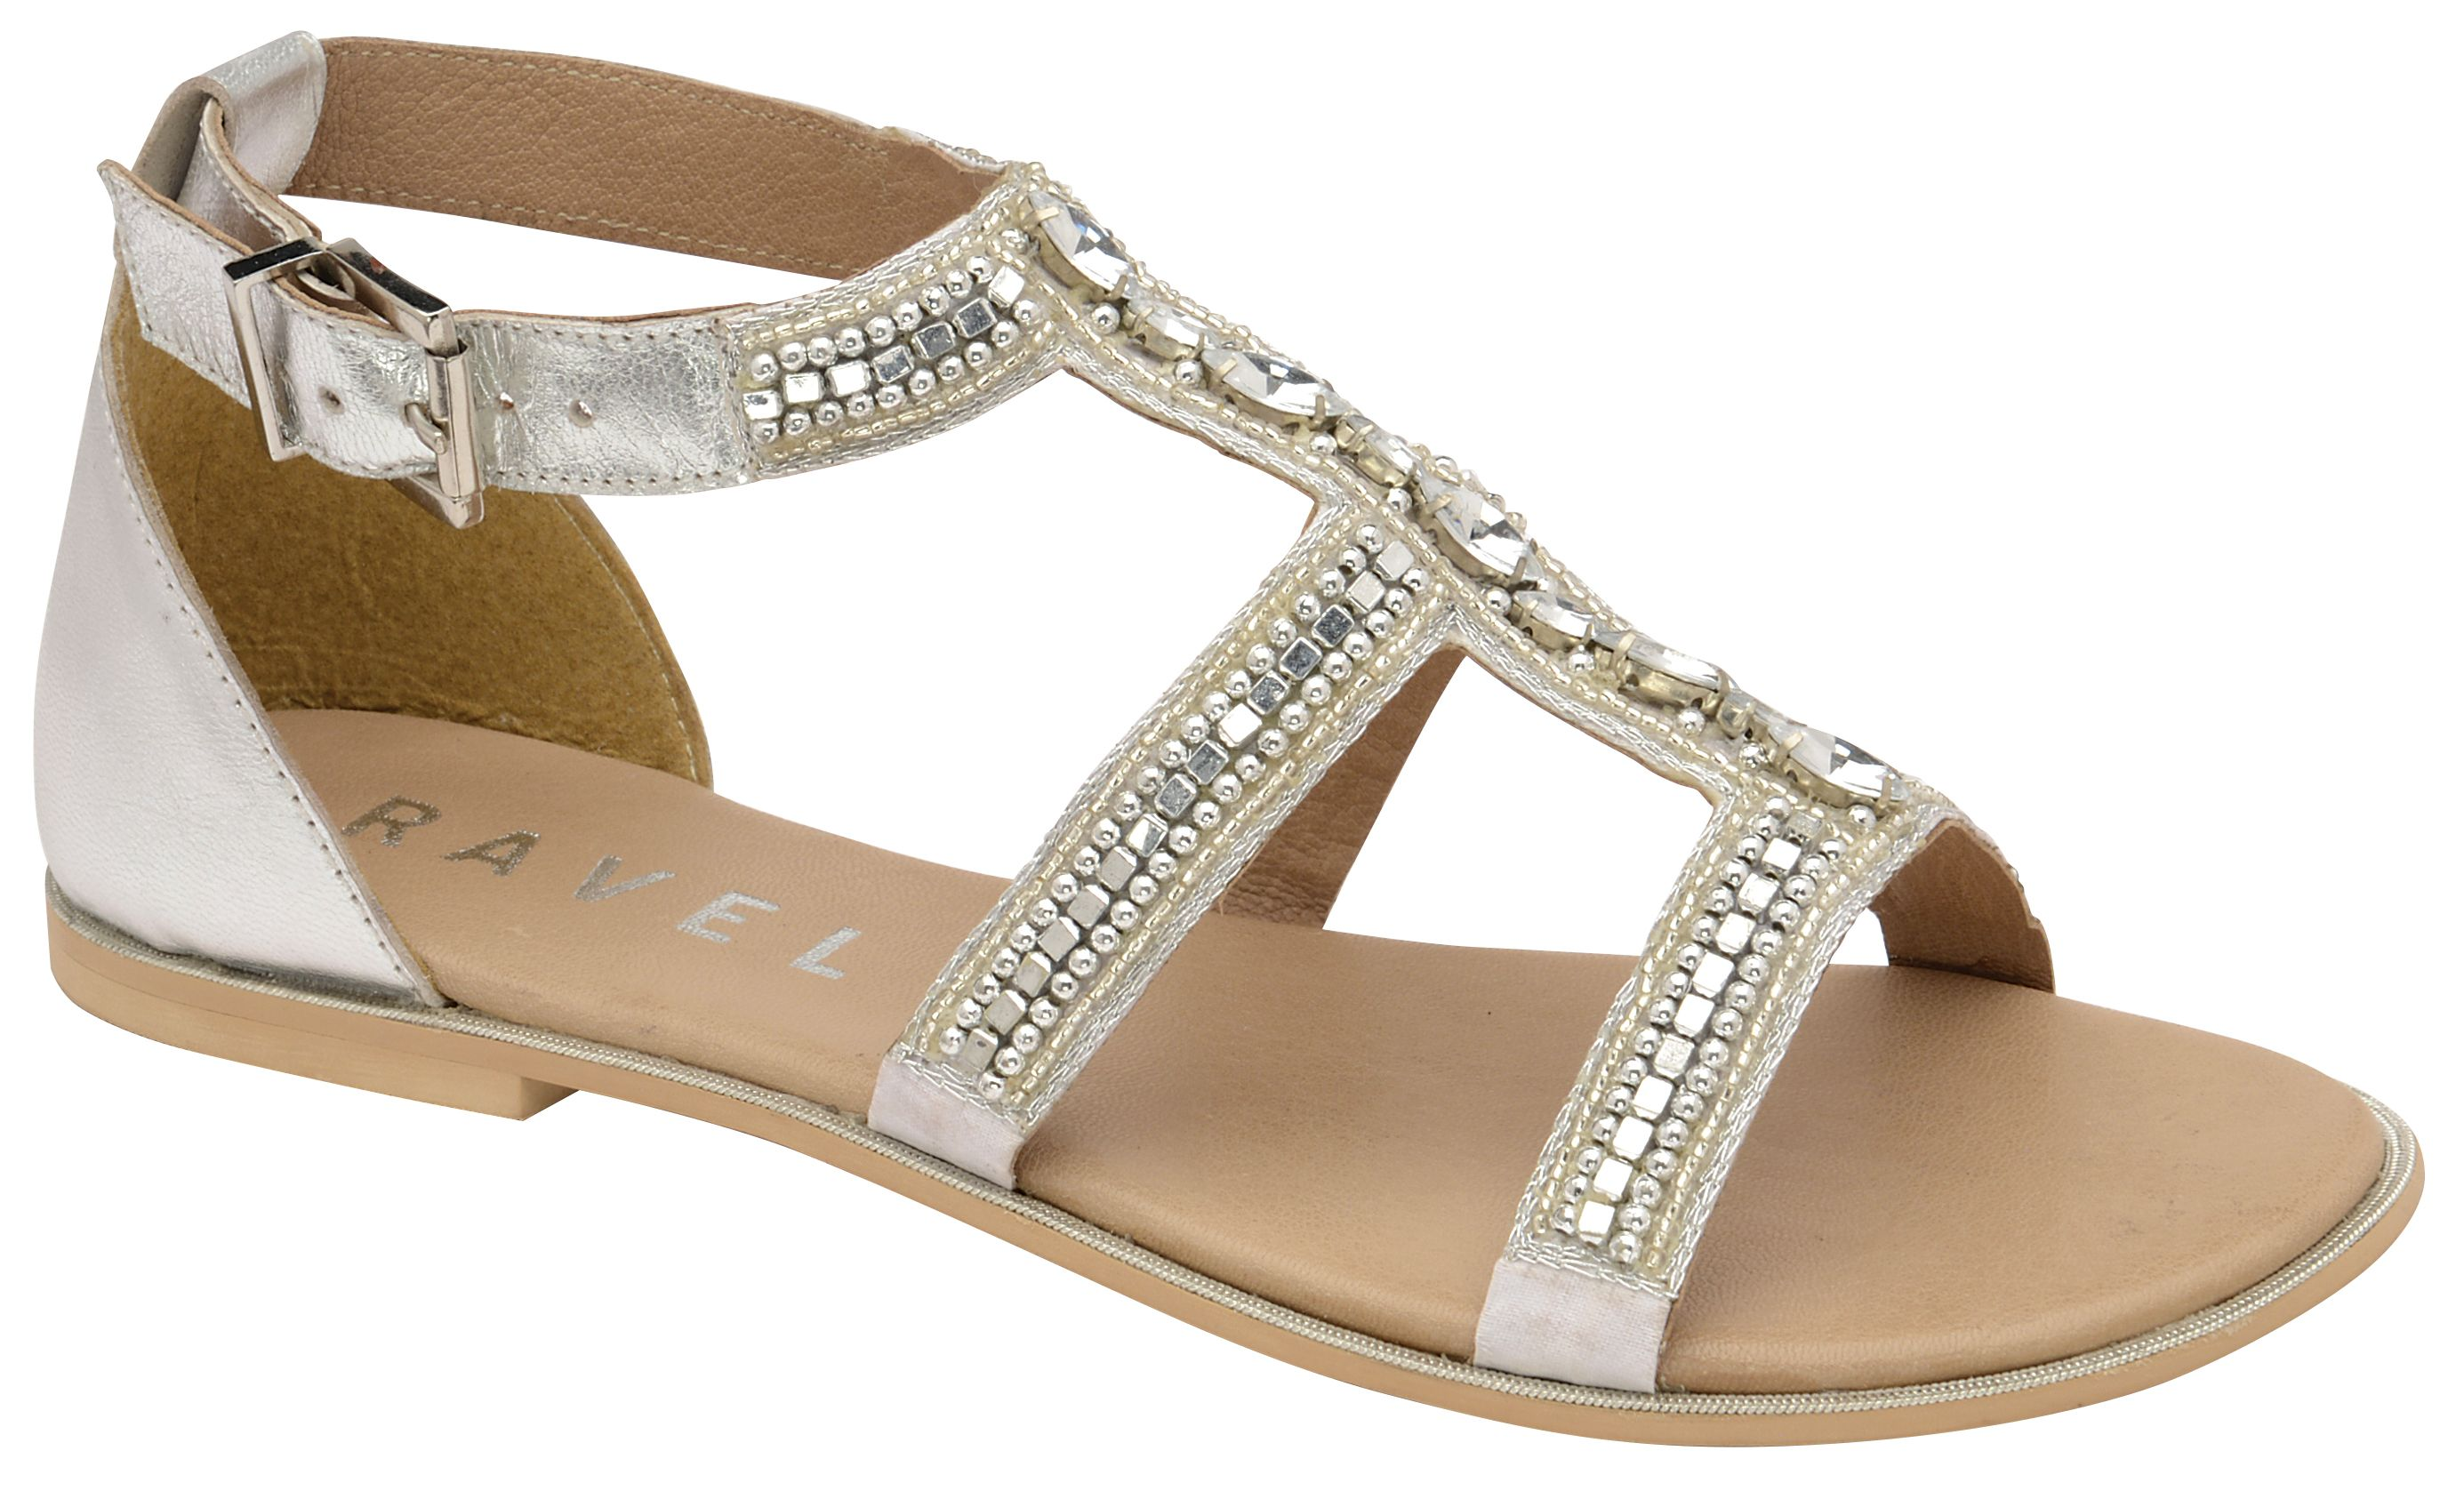 Ravel Burnaby Ankle Strap Sandals, Silverlic Silver